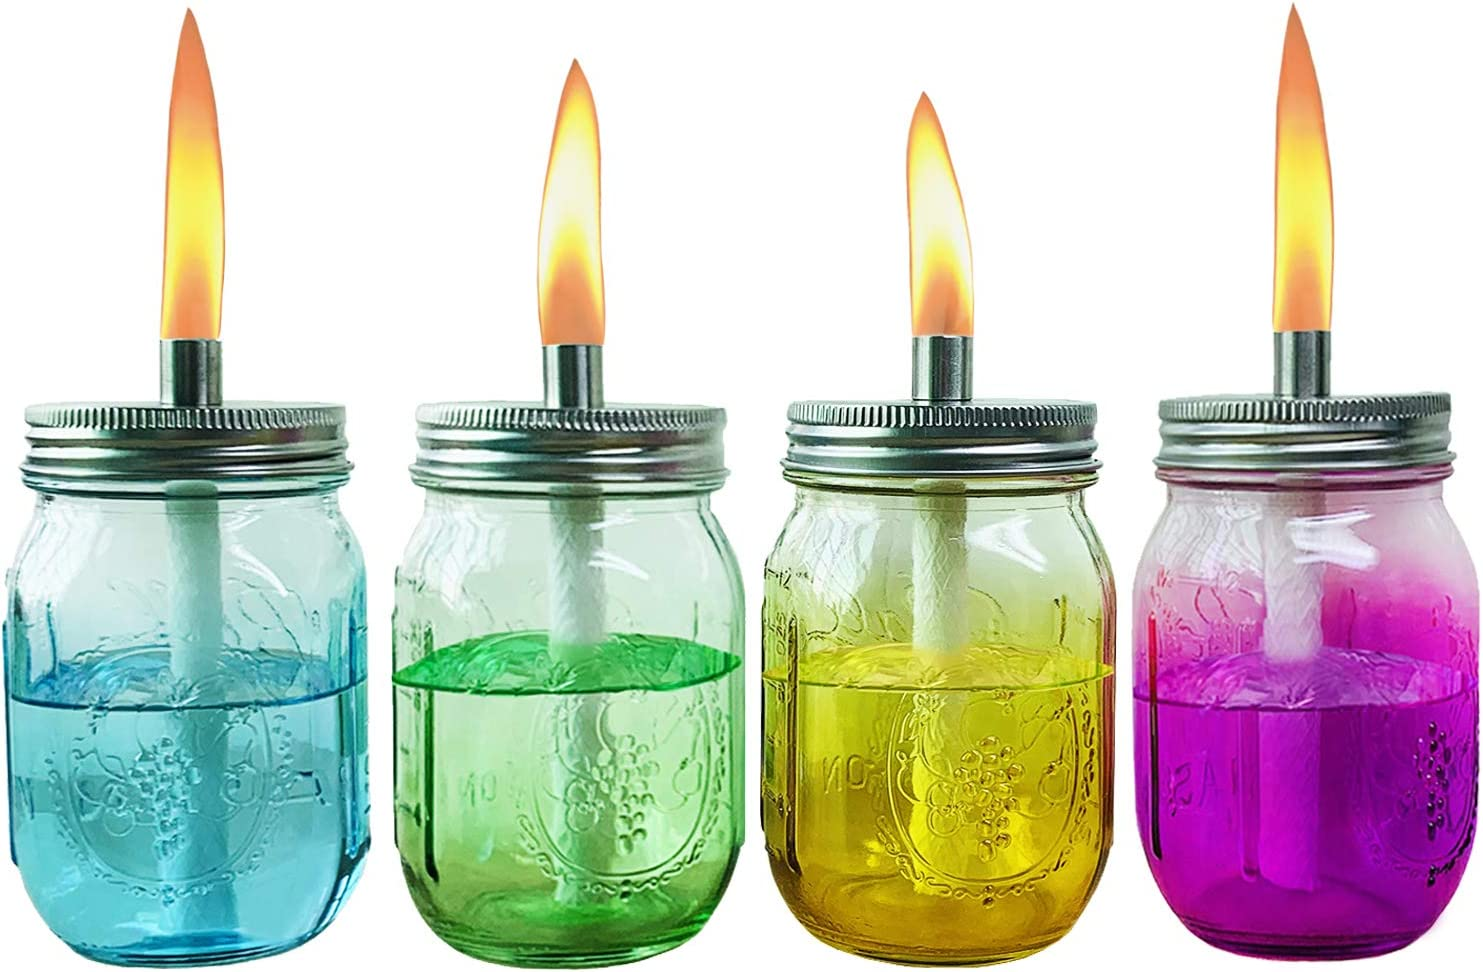 Aobik Multicolored Glass Outdoor Tabletop Torch Set, Fiberglass Wicks,Stainless Steel Lid with Fire Cover Caps,6-inch High,Blue,Green,Yellow & Rose,Set of 4 (4 Colors Jars Included)